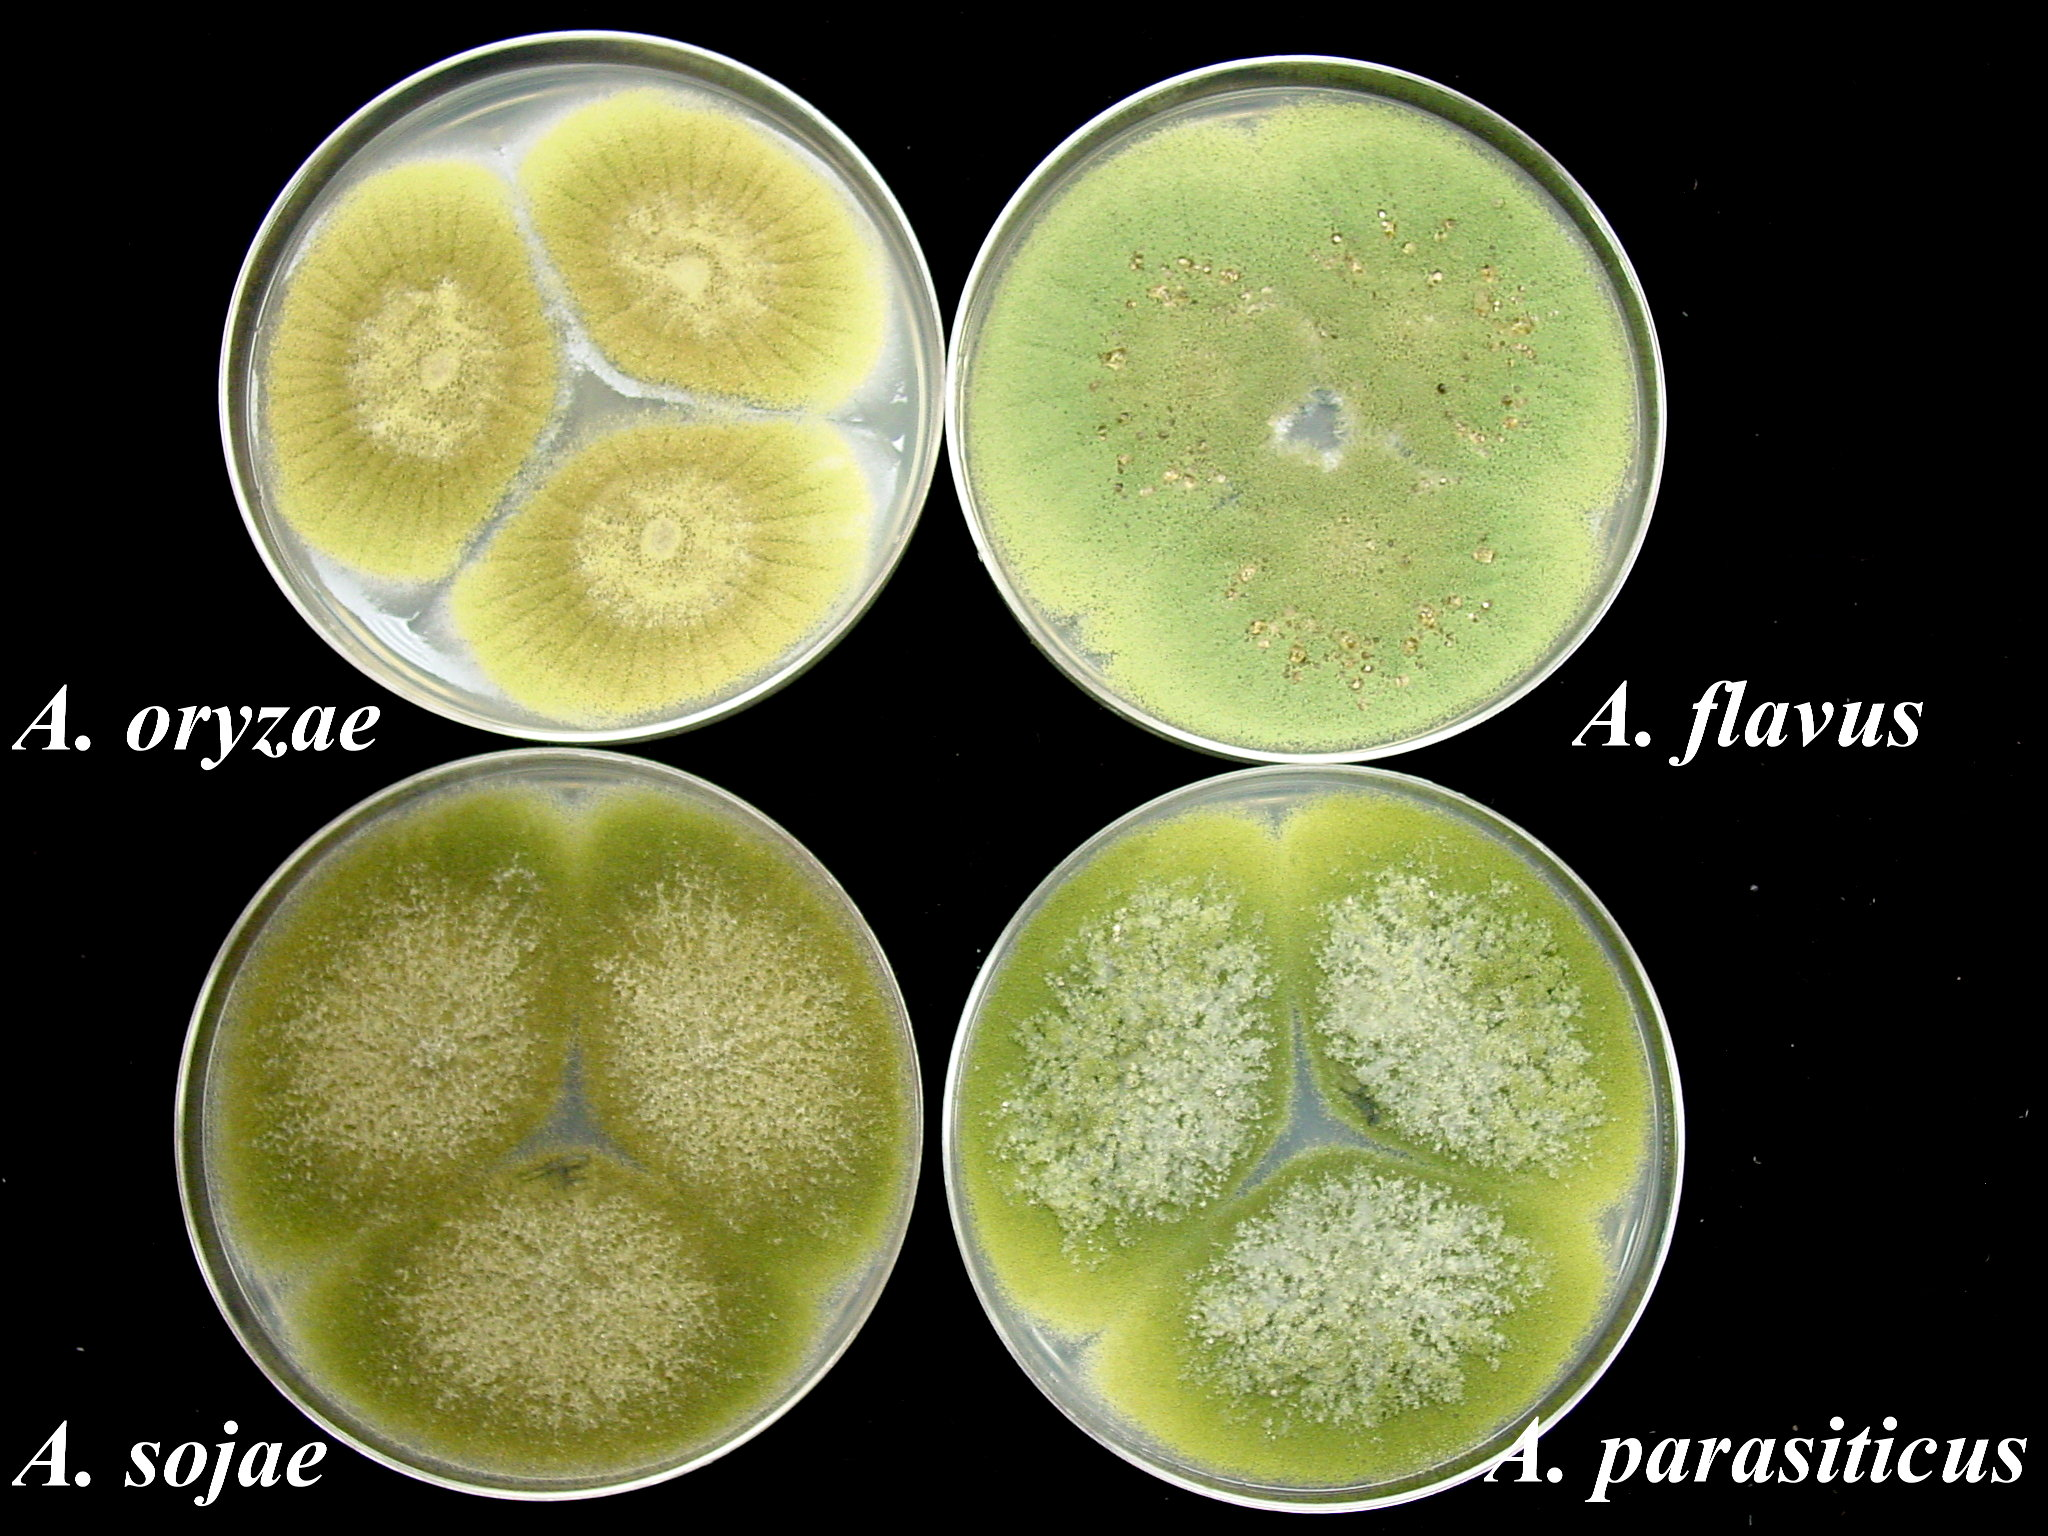 Experts in mold identification - Our technicians are experts in mold identification using molecular tools and confirming each culture with classical methodology. Information on the preservative resistance and other physiological properties (temperature of growth, etc.) of each culture will be provided as well as information on its ecology and mycotoxin(s) production.